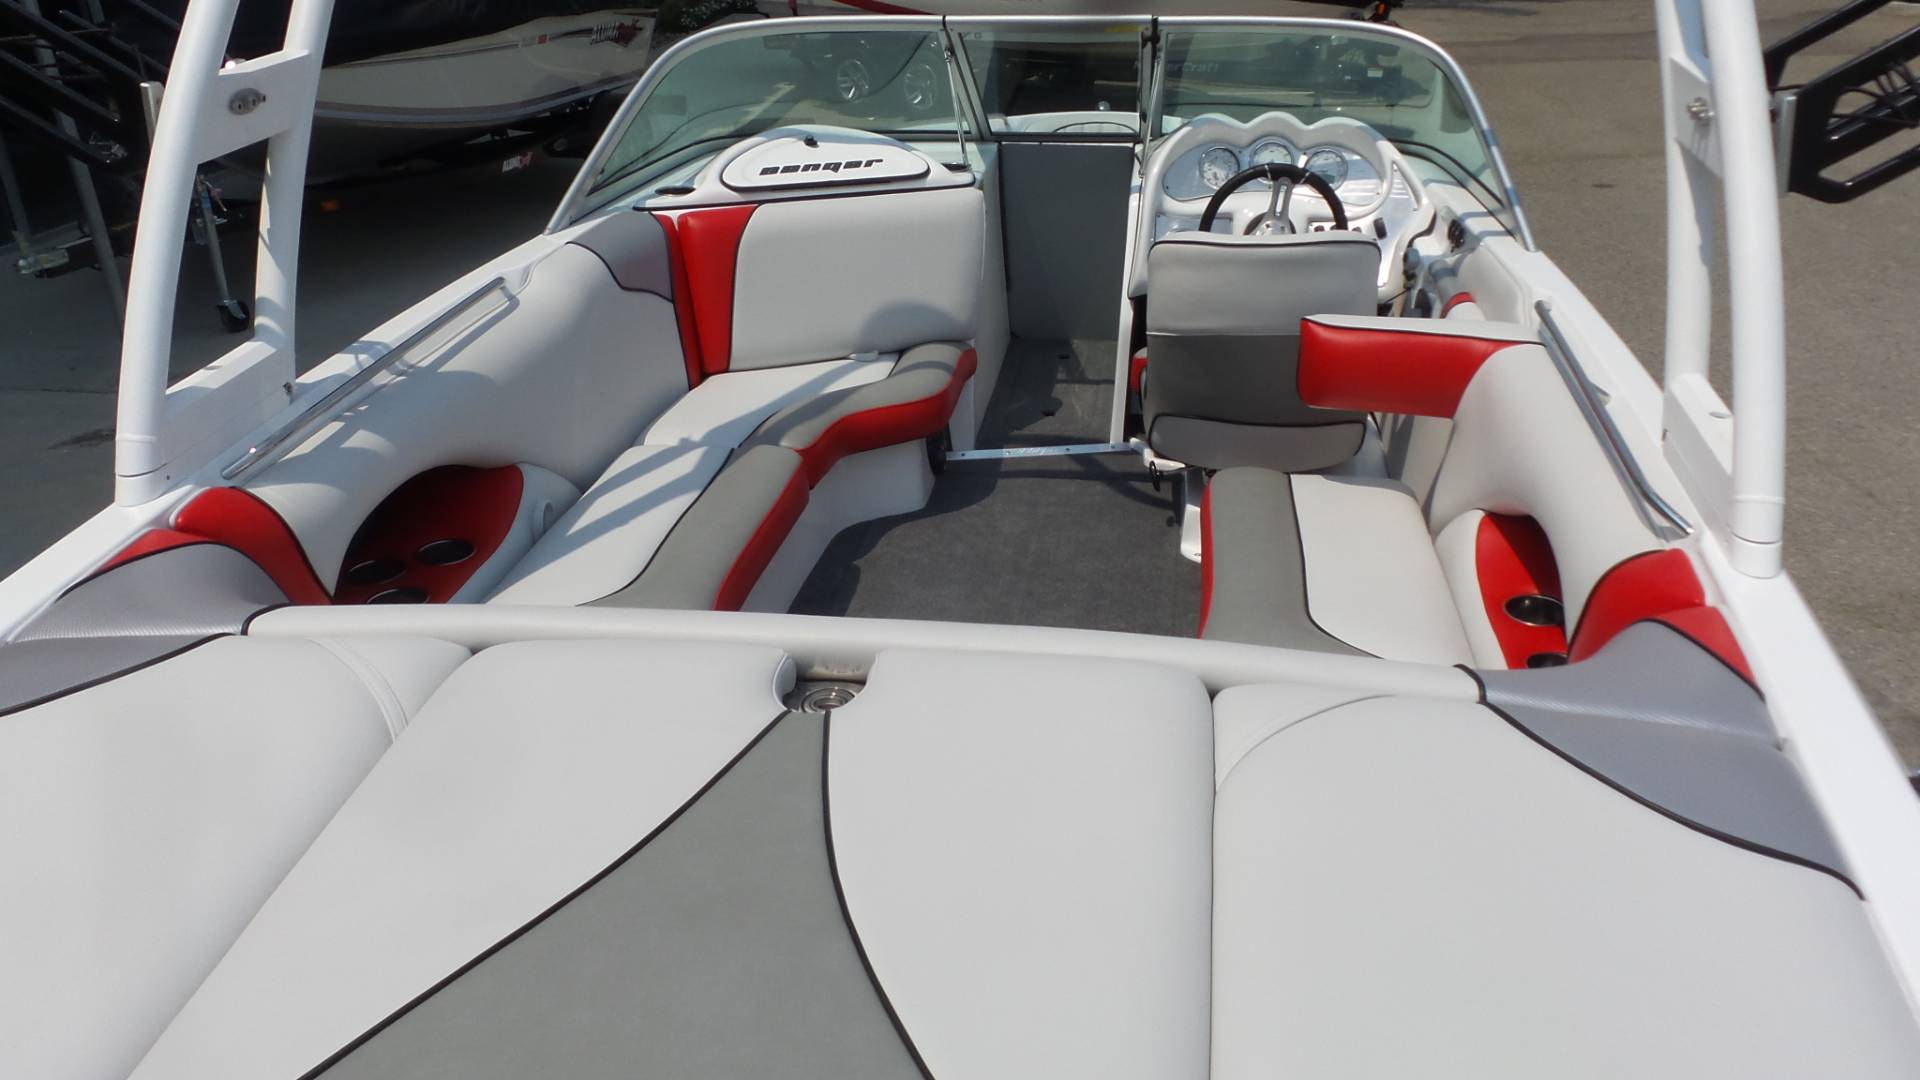 2019 Sanger Boats V215 S in Madera, California